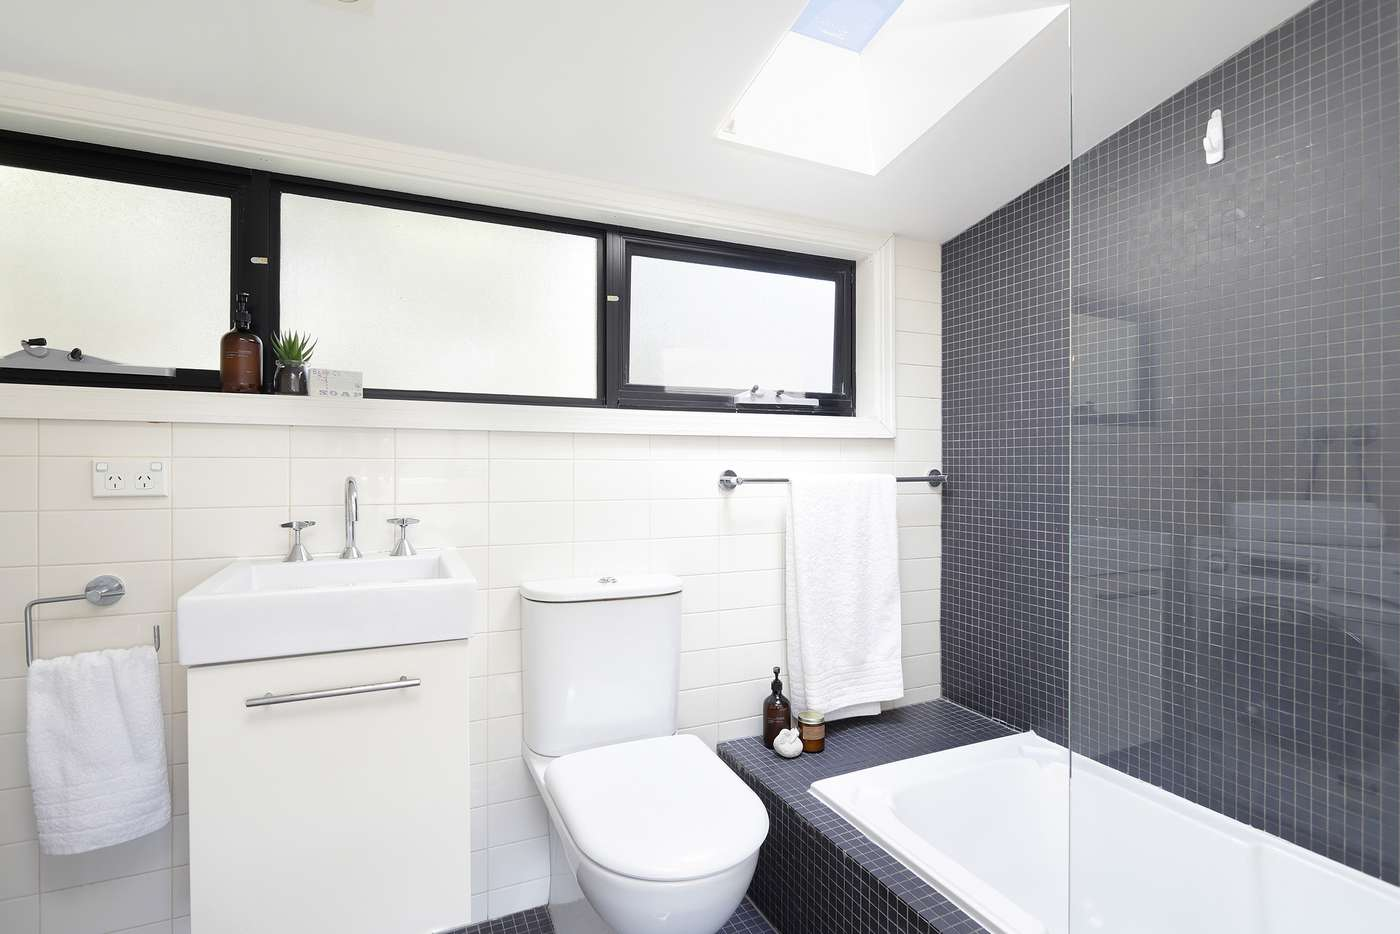 Fifth view of Homely apartment listing, 8/37 Midway Drive, Maroubra NSW 2035